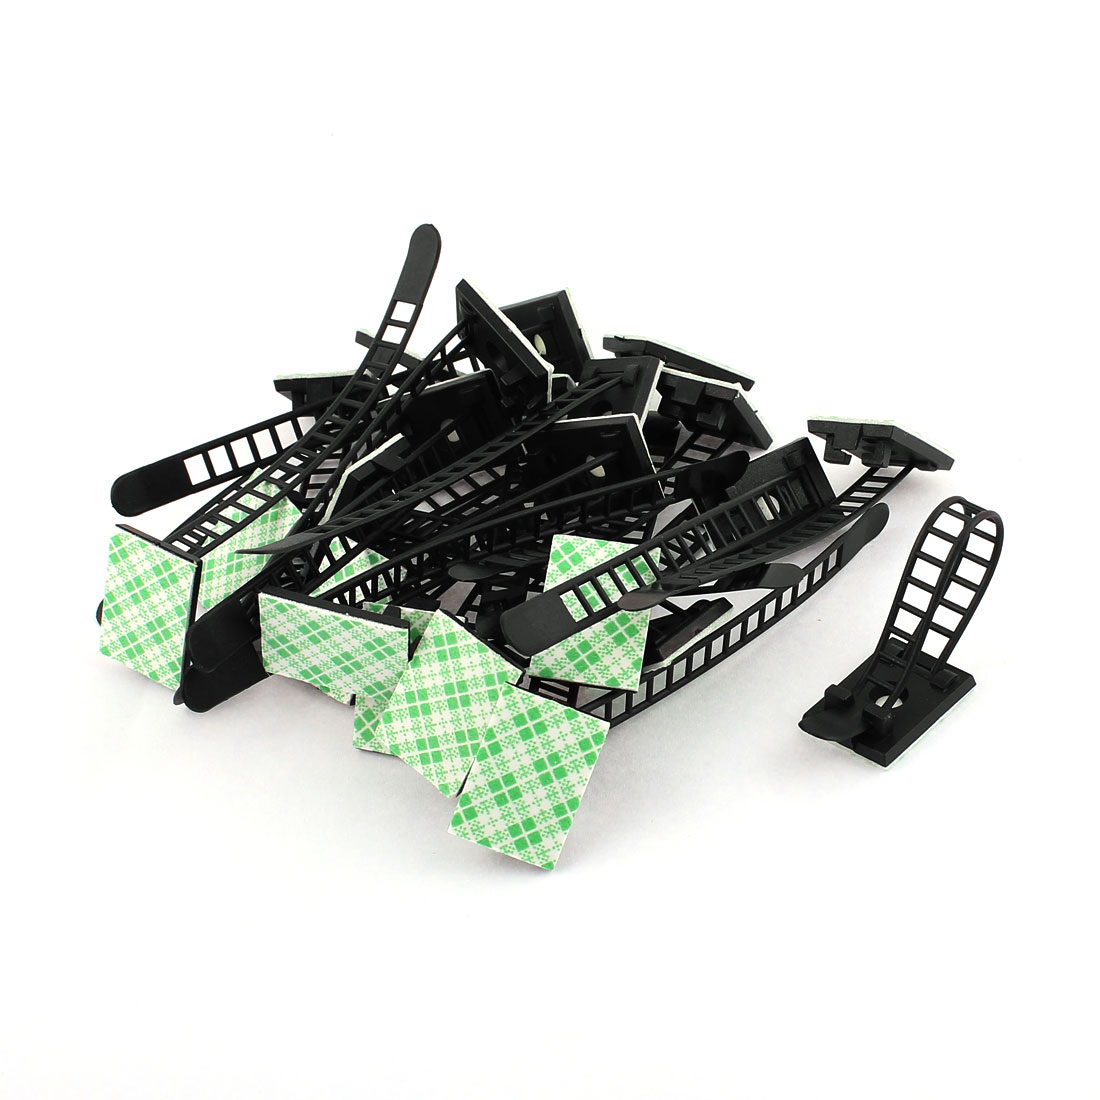 24 Pcs Plastic Adjustable Self-Adhesive Cable Tie Mount Base Holder